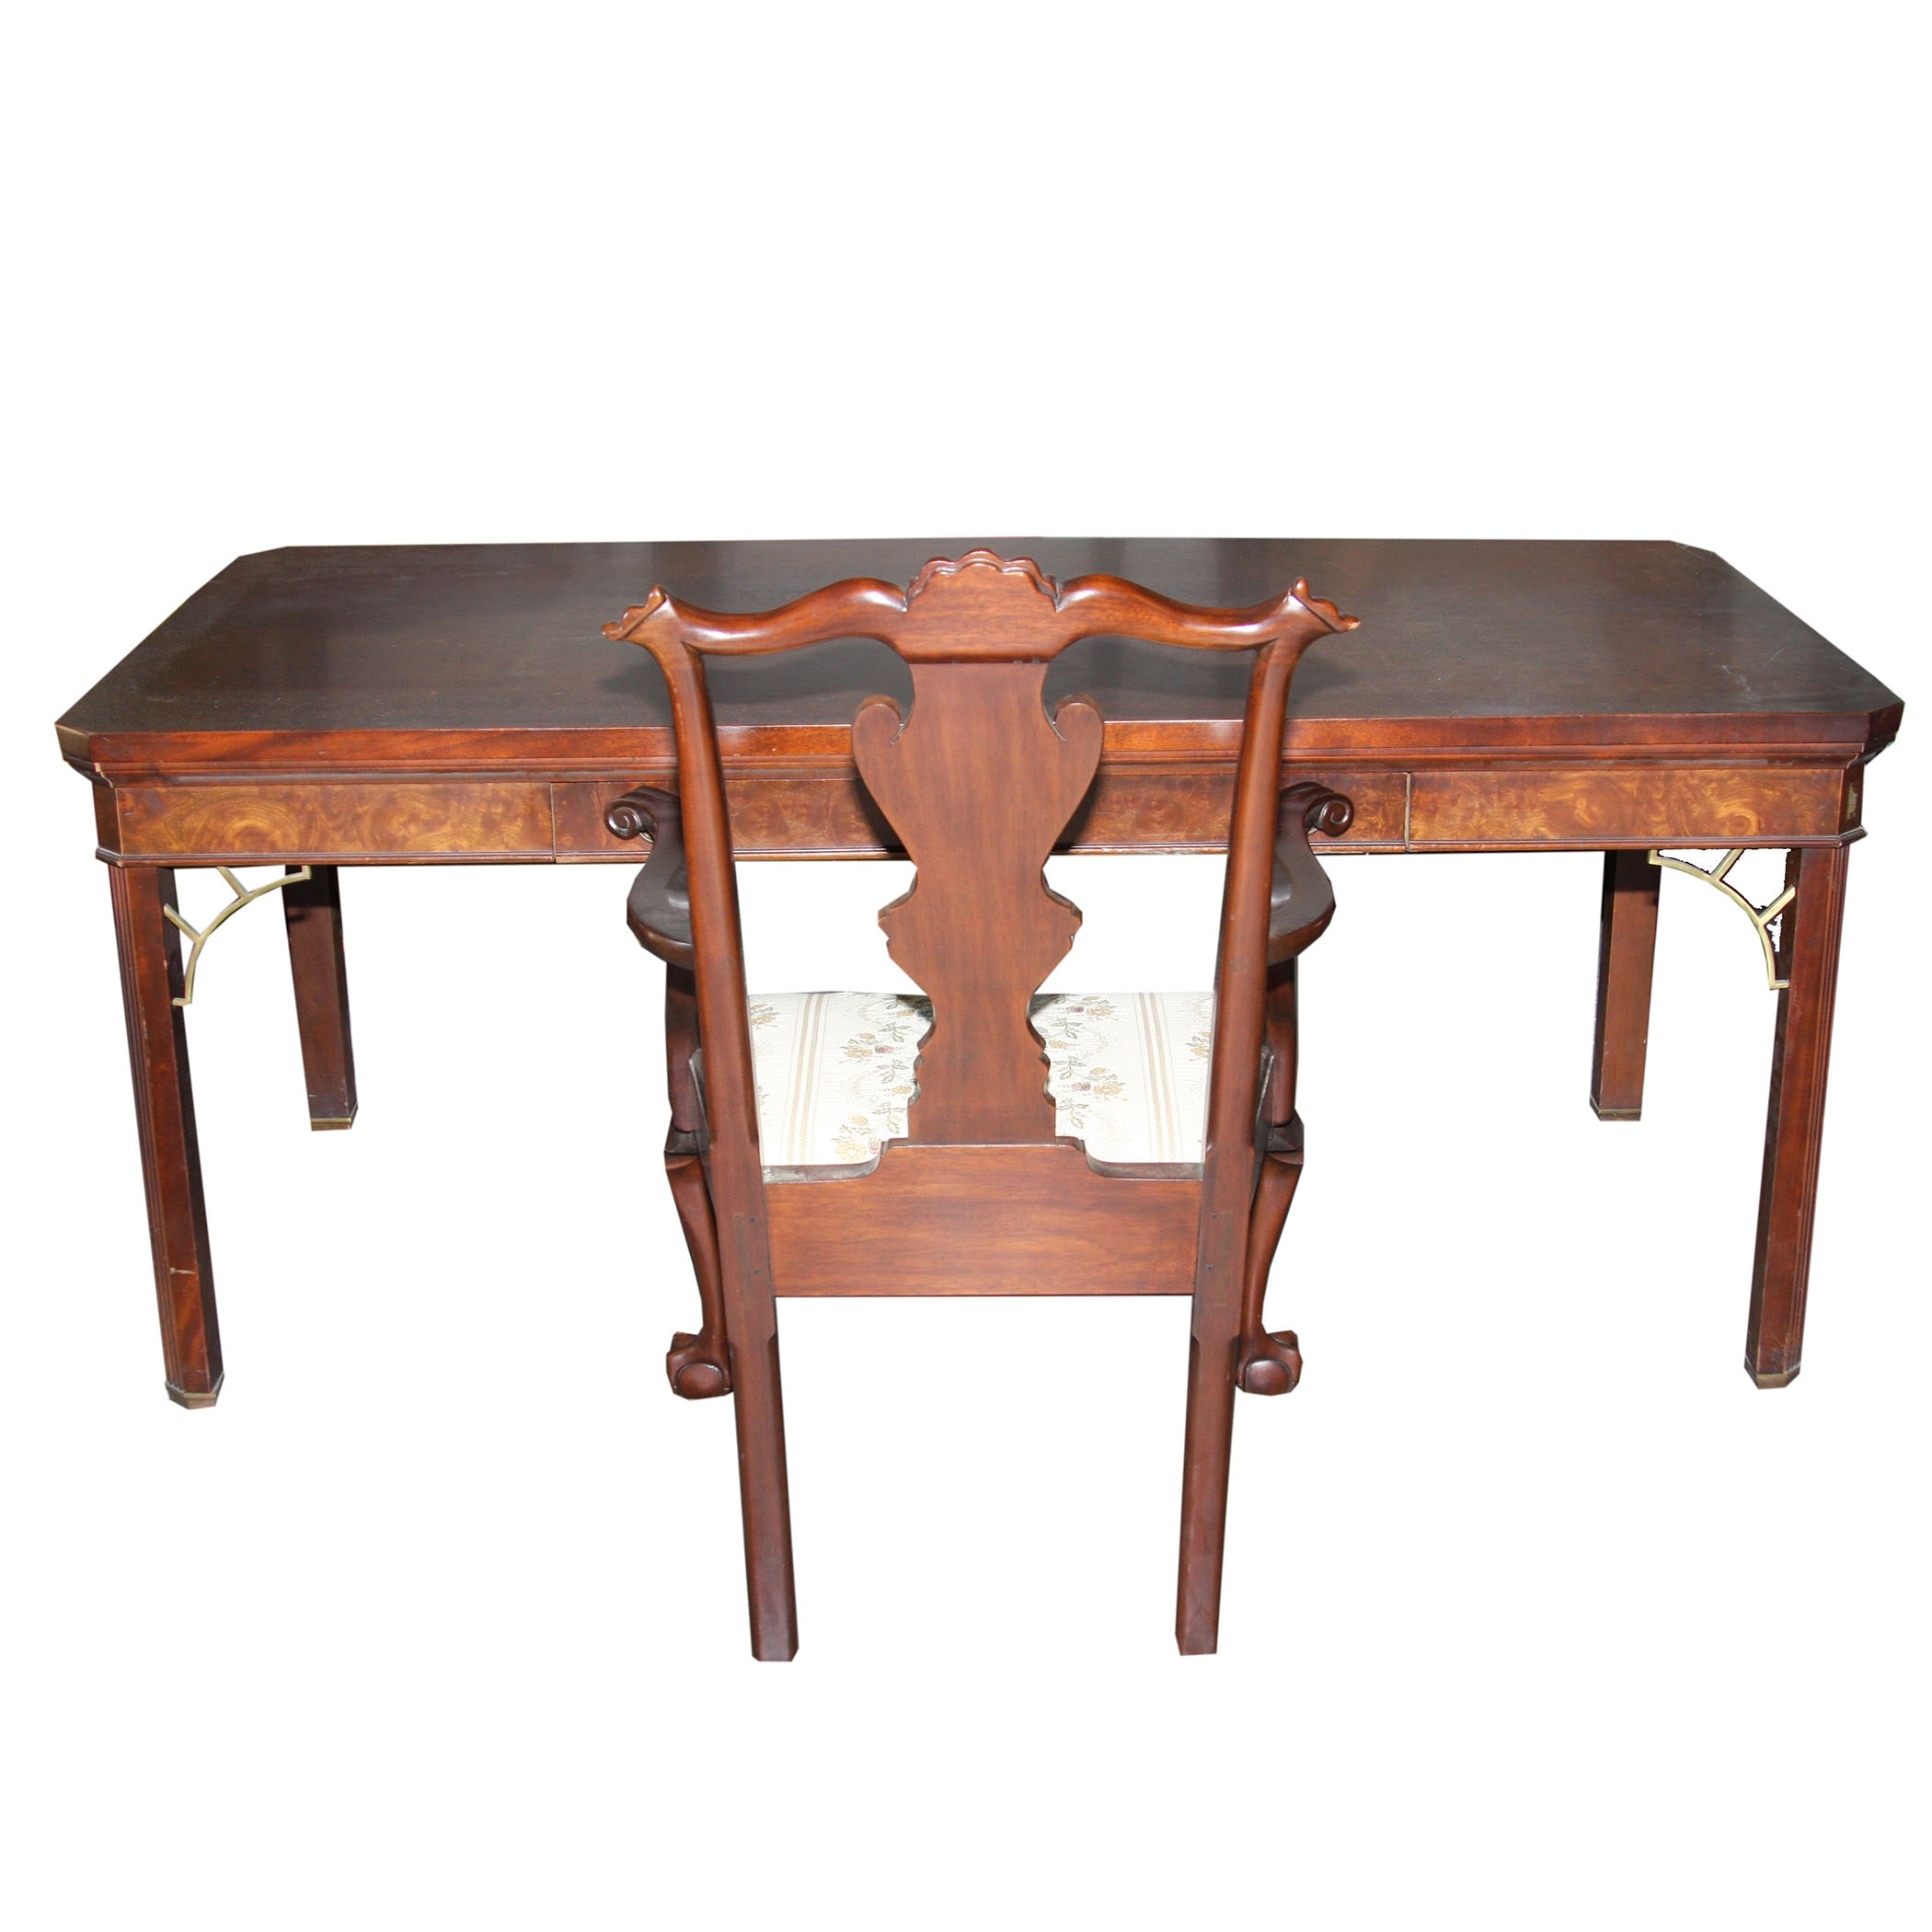 Myrtle Desk With Henkel-Harris Mahogany Arm Chair